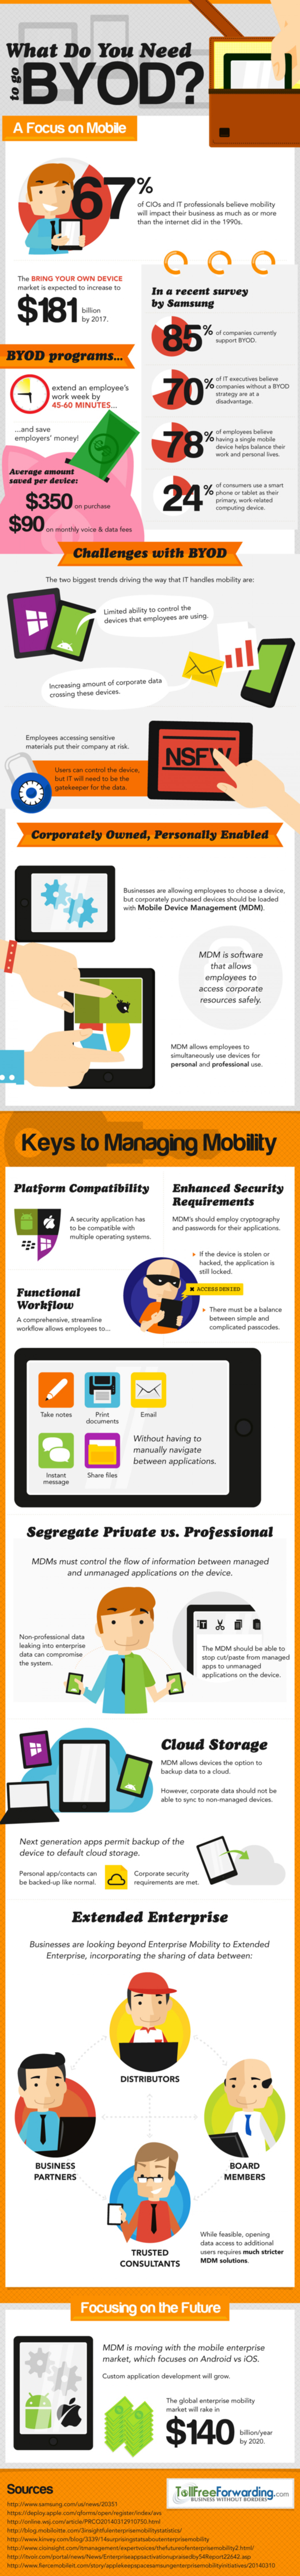 What Do You Need to Go BYOD? Infographic